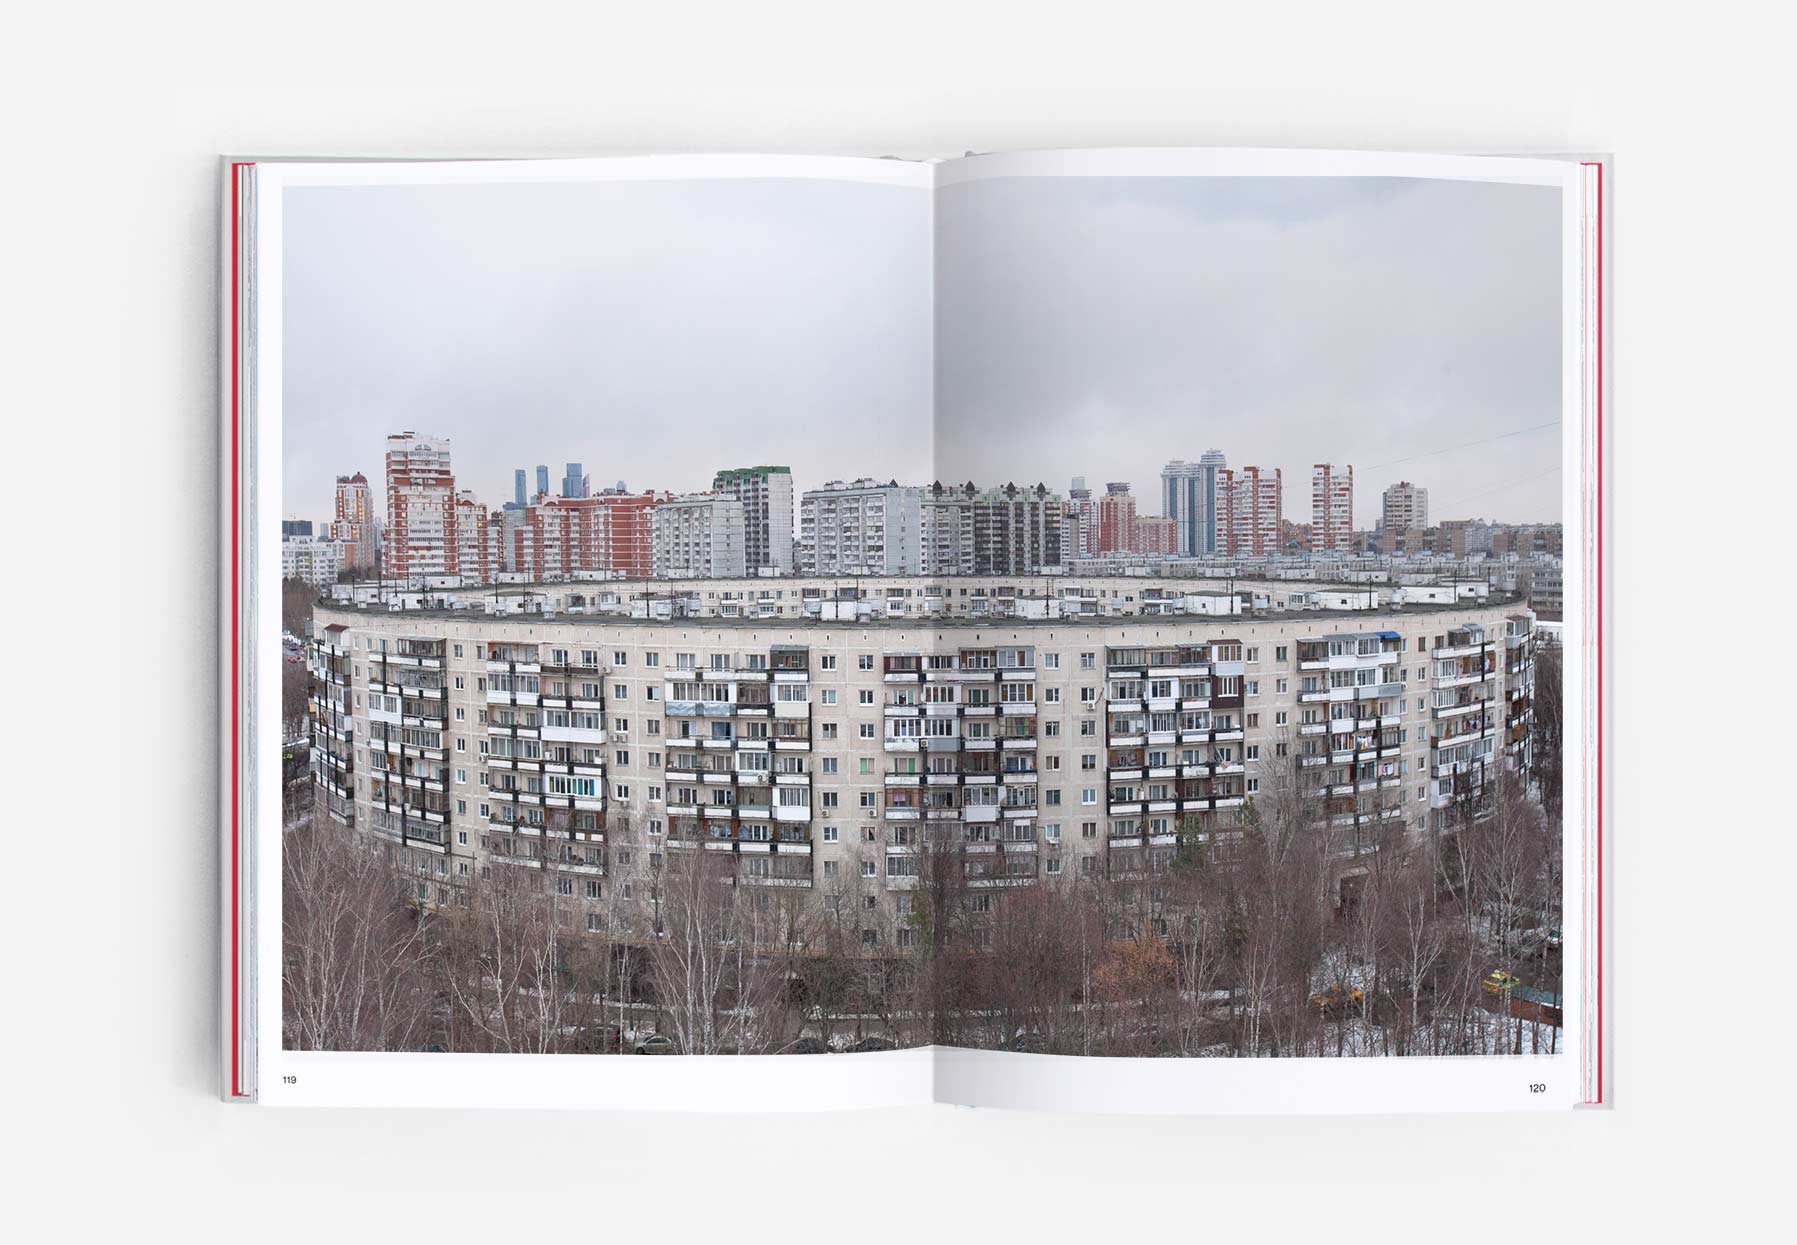 'Bublik' residential complex in Moscow